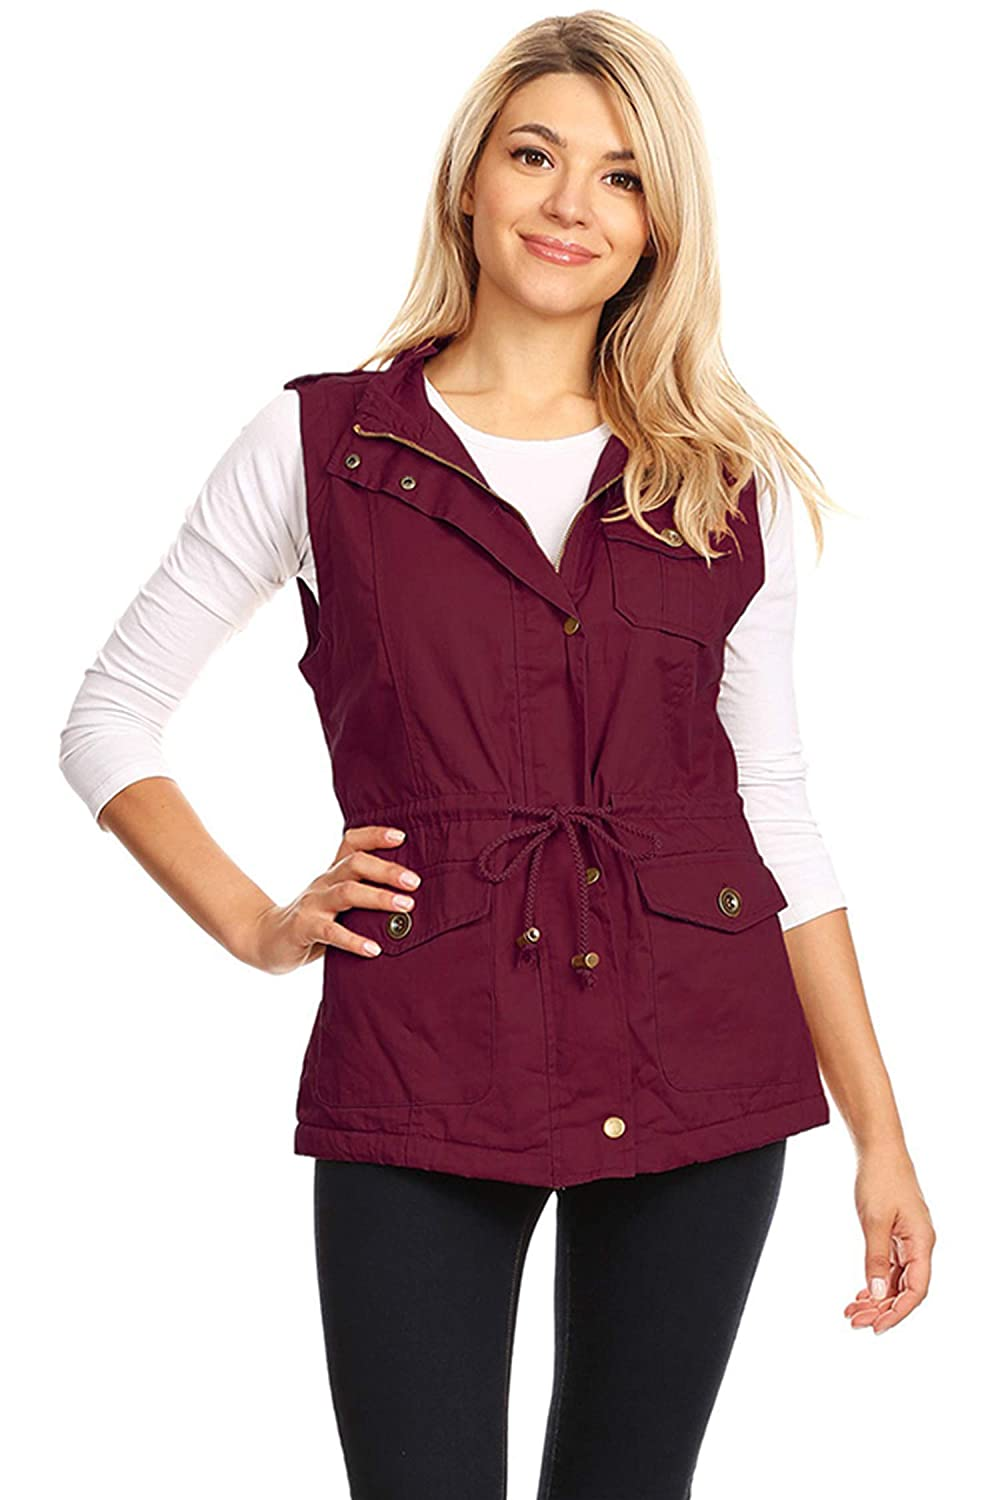 Women's Fashion Lightweight Sleeveless Faux Fur Lined Utility Vest